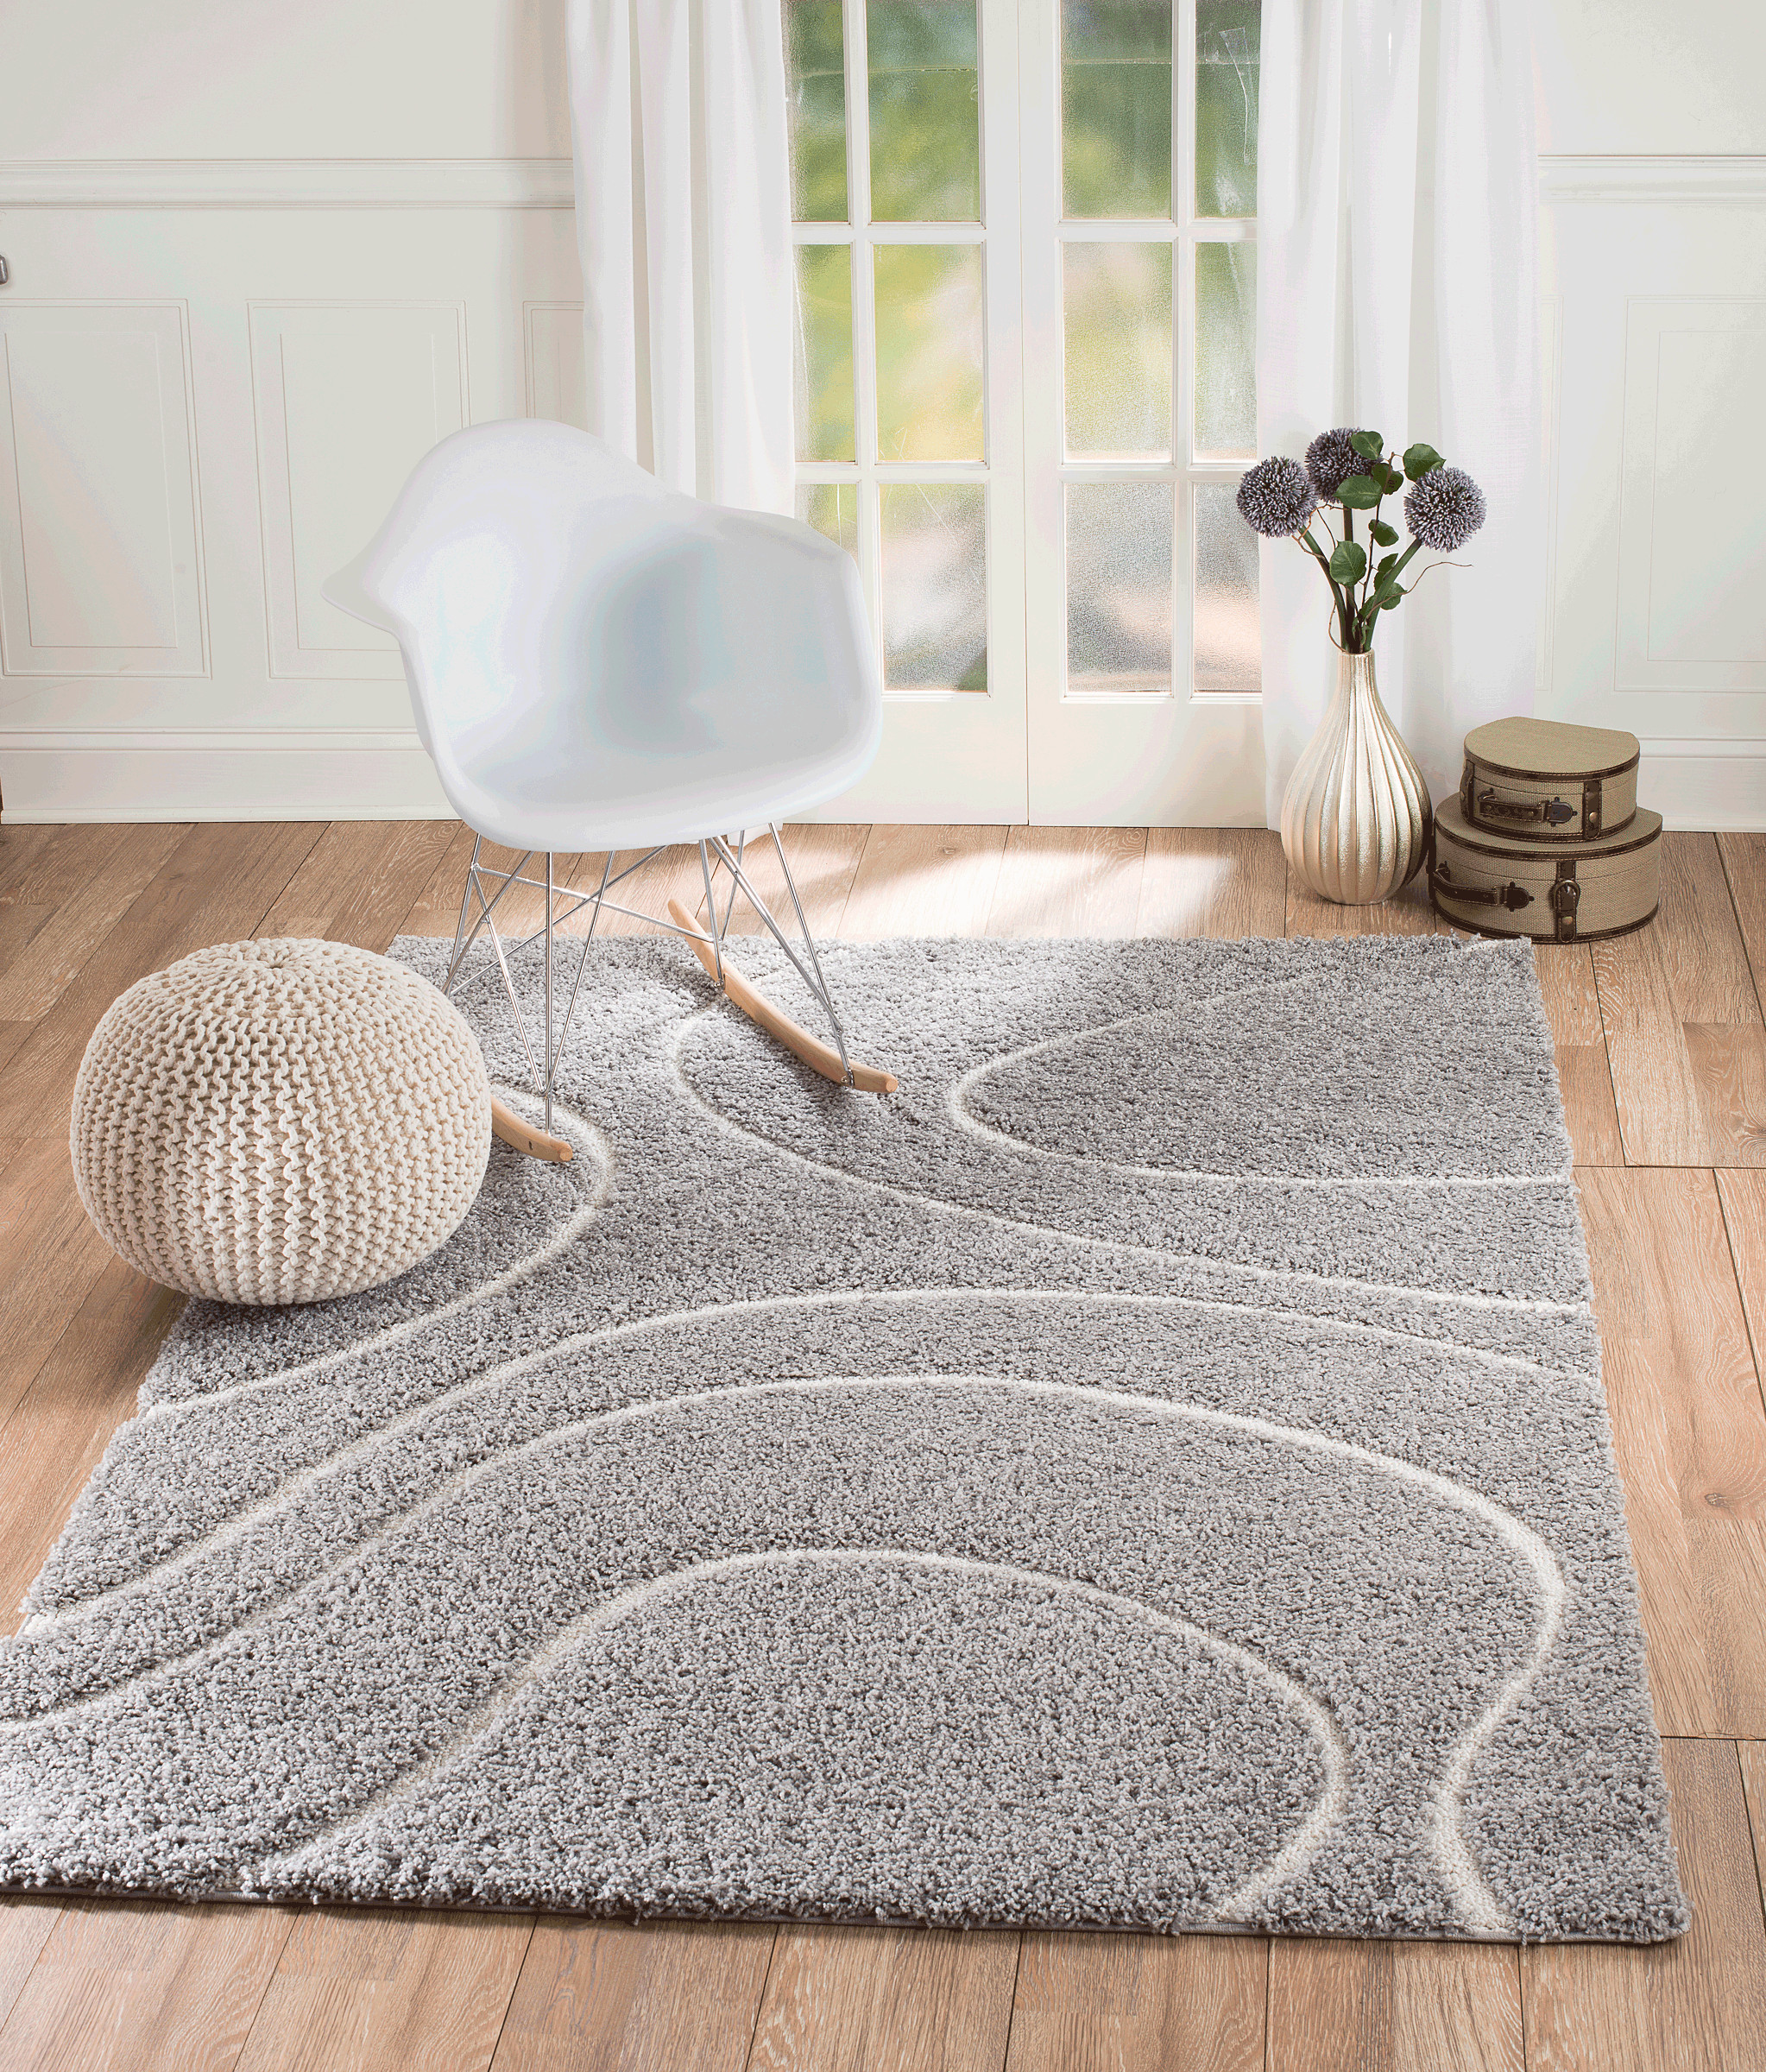 Soft Rugs for Bedroom Unique Lorena Shag 03 Gray Wave Shaggy area Rug area Rugs